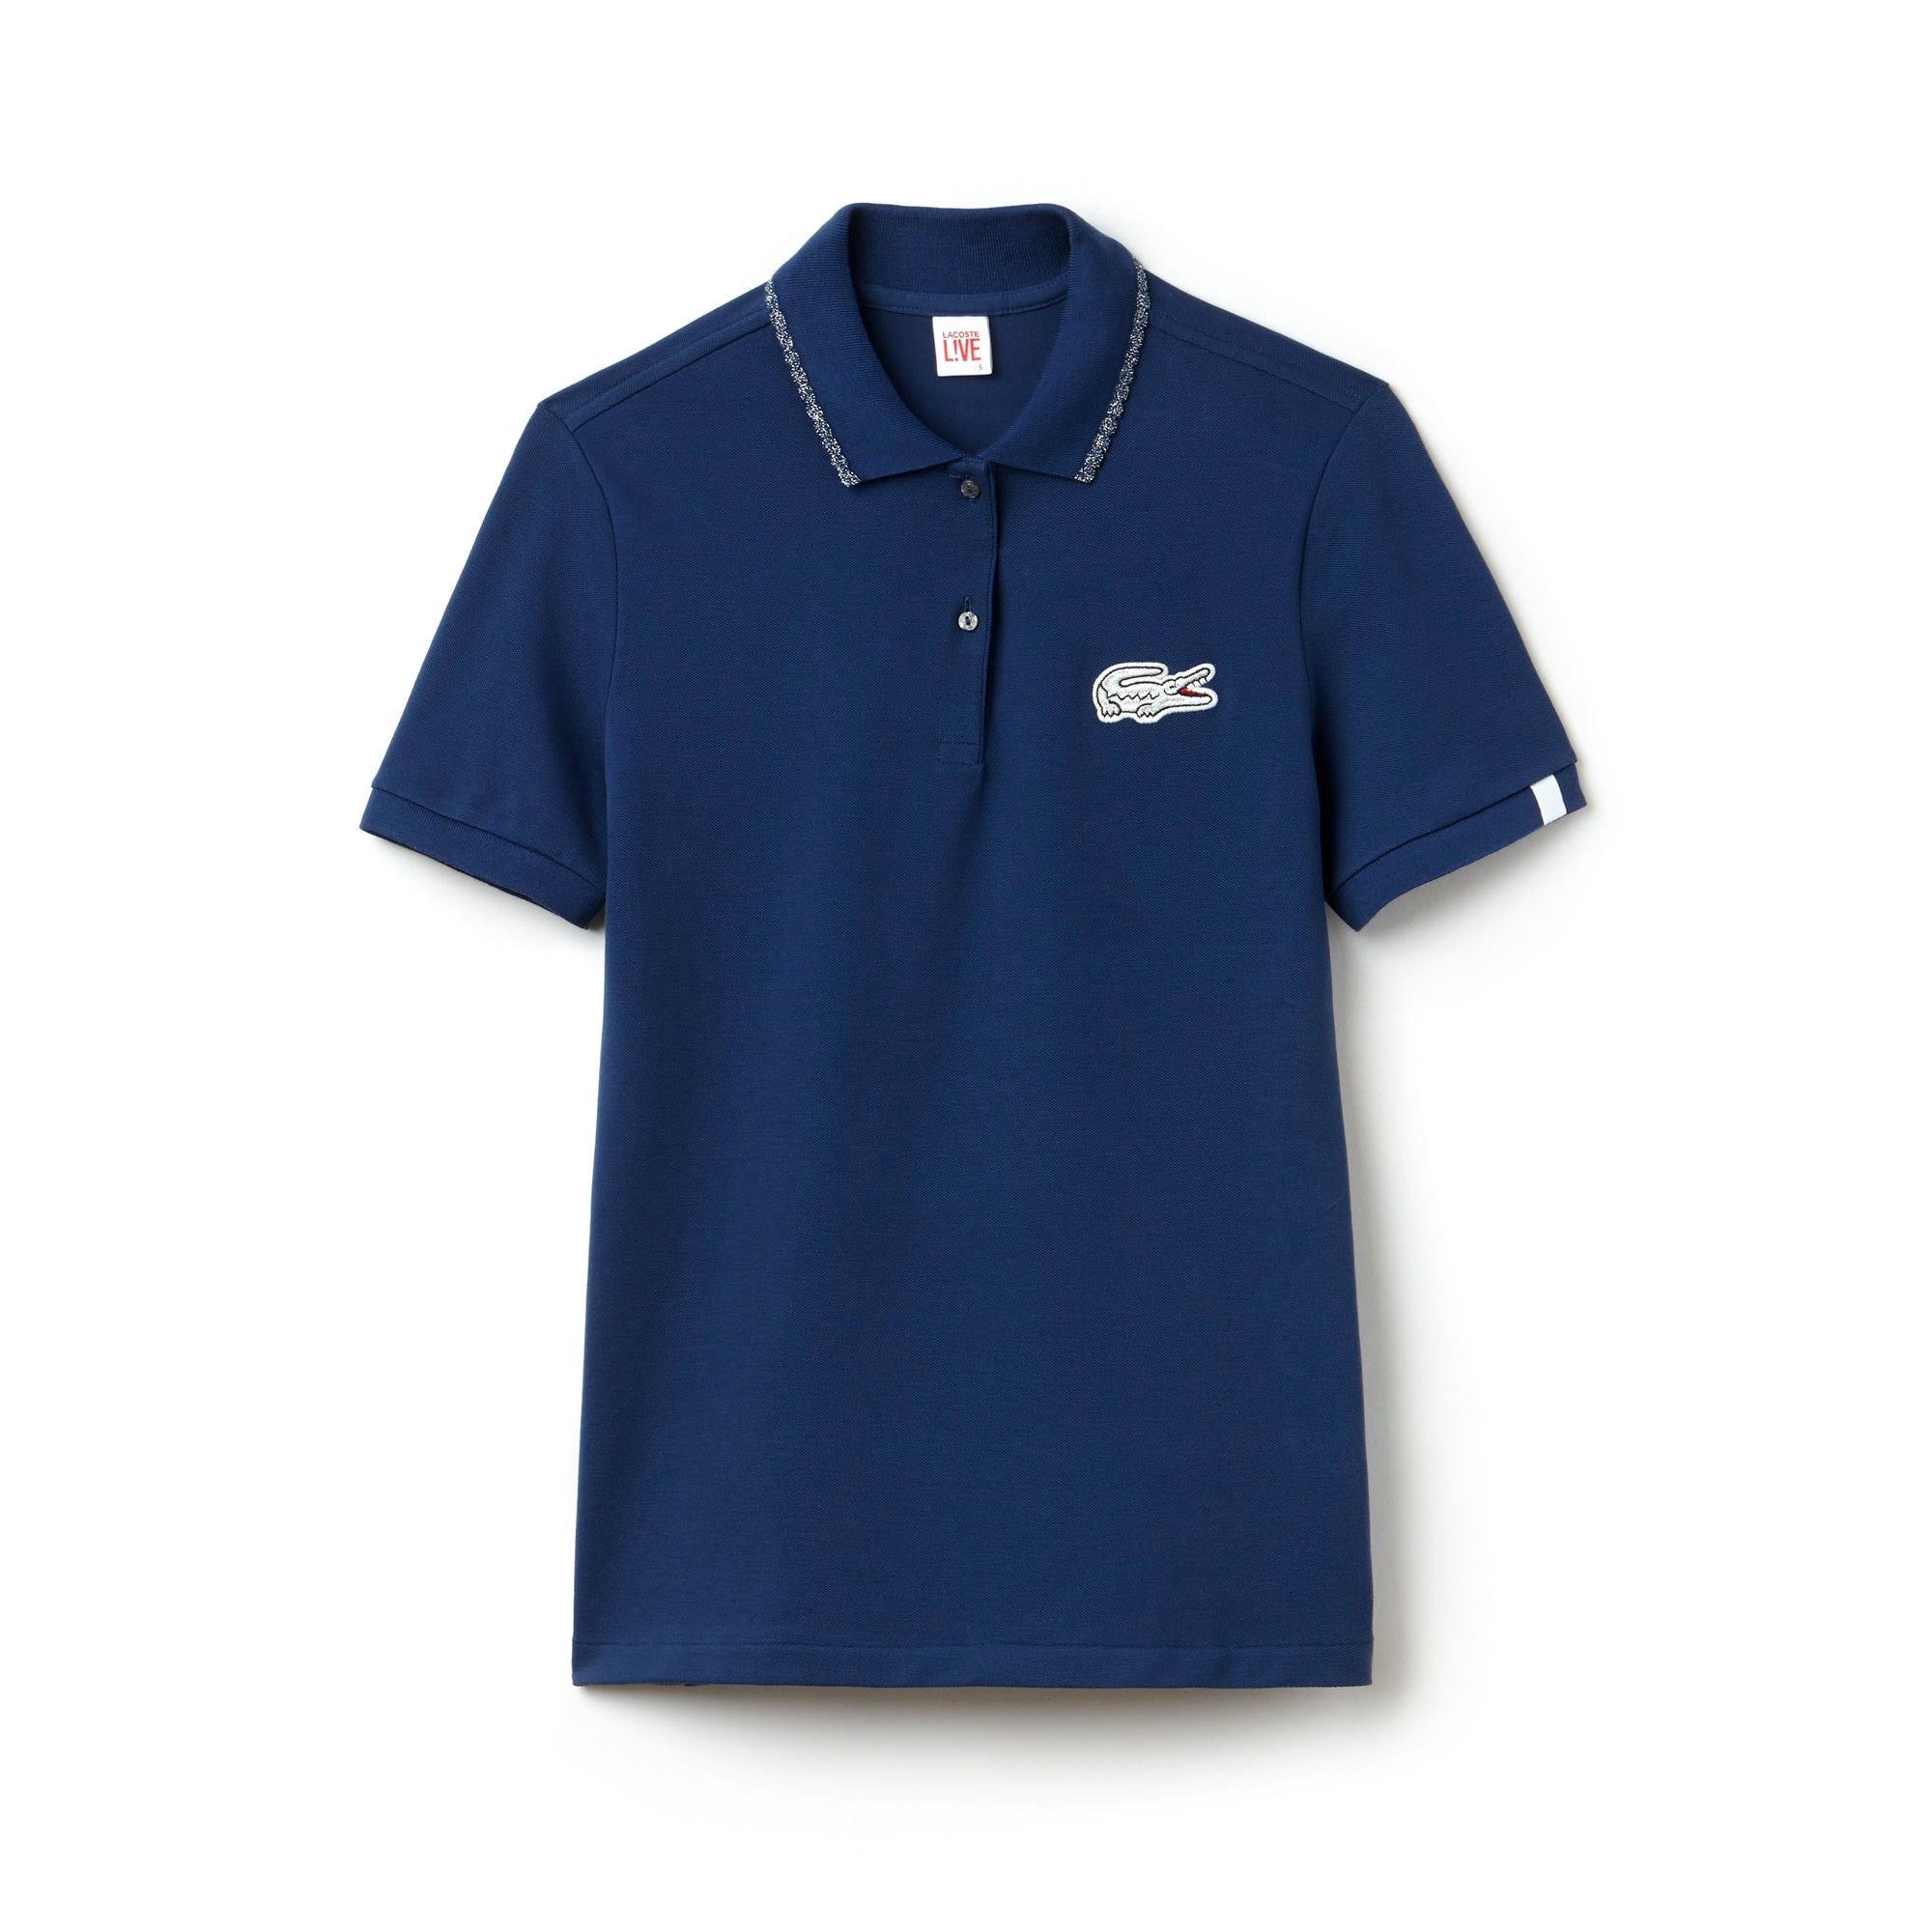 Polo slim fit Lacoste LIVE com debruado e crocodilo Lurex